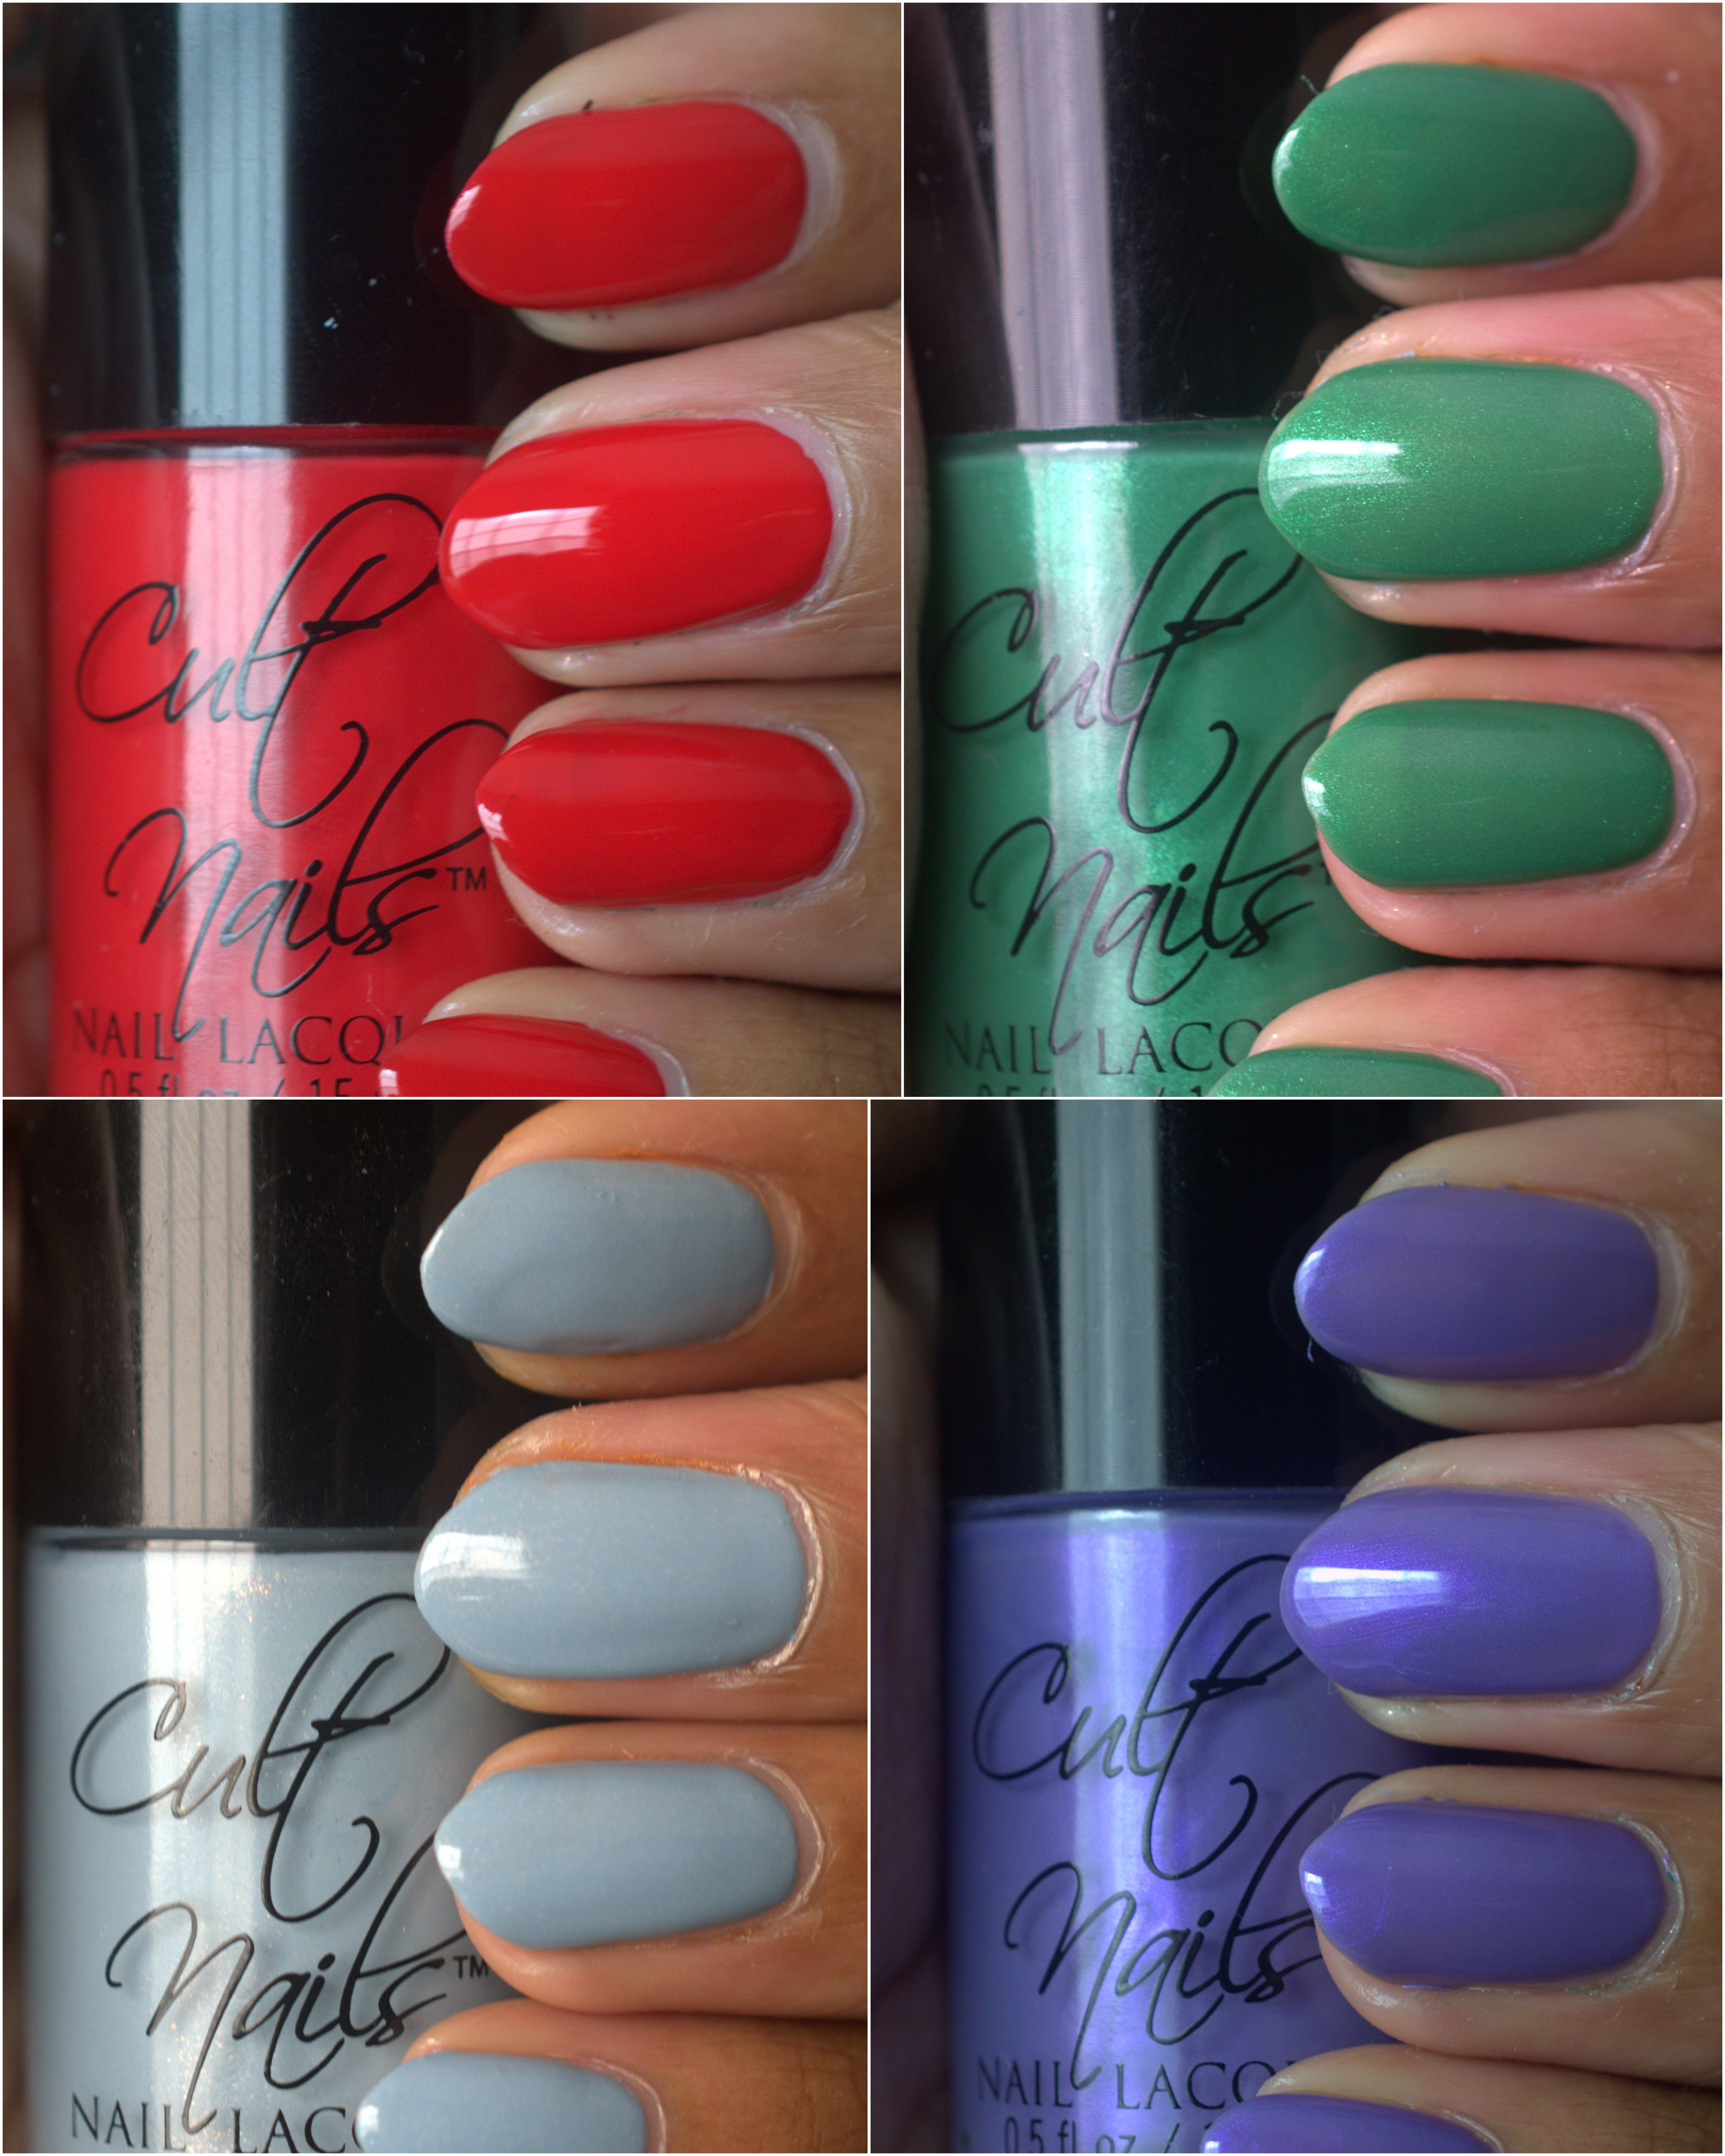 Cult Nails Cult Fairy Tale collection